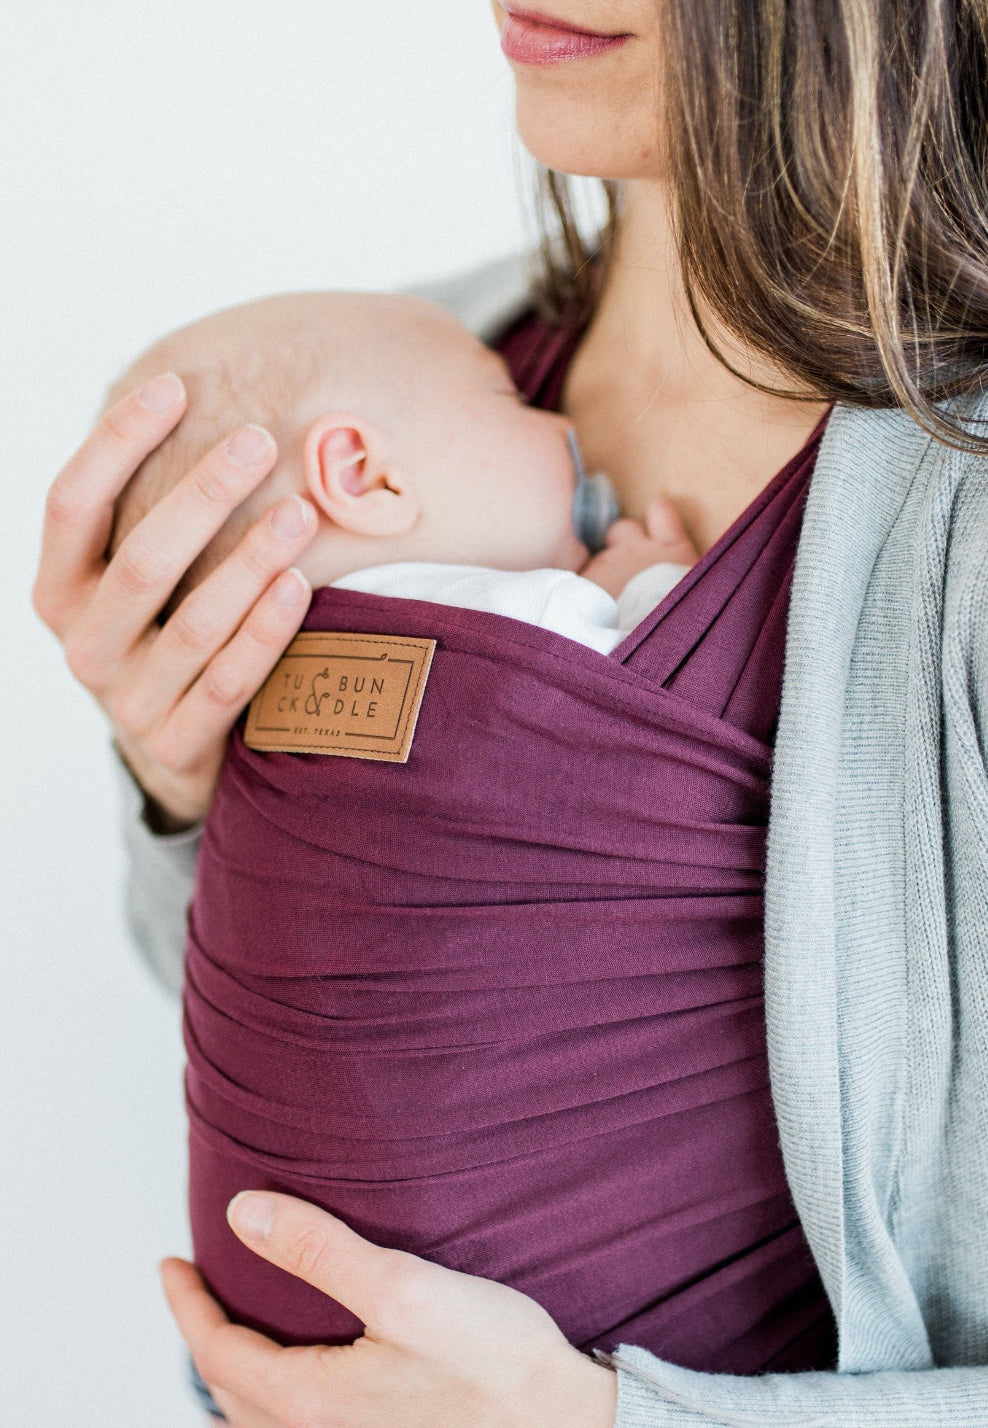 A woman with long medium brown hair carrying a baby with a deep purple-red colored baby wrap carrier.